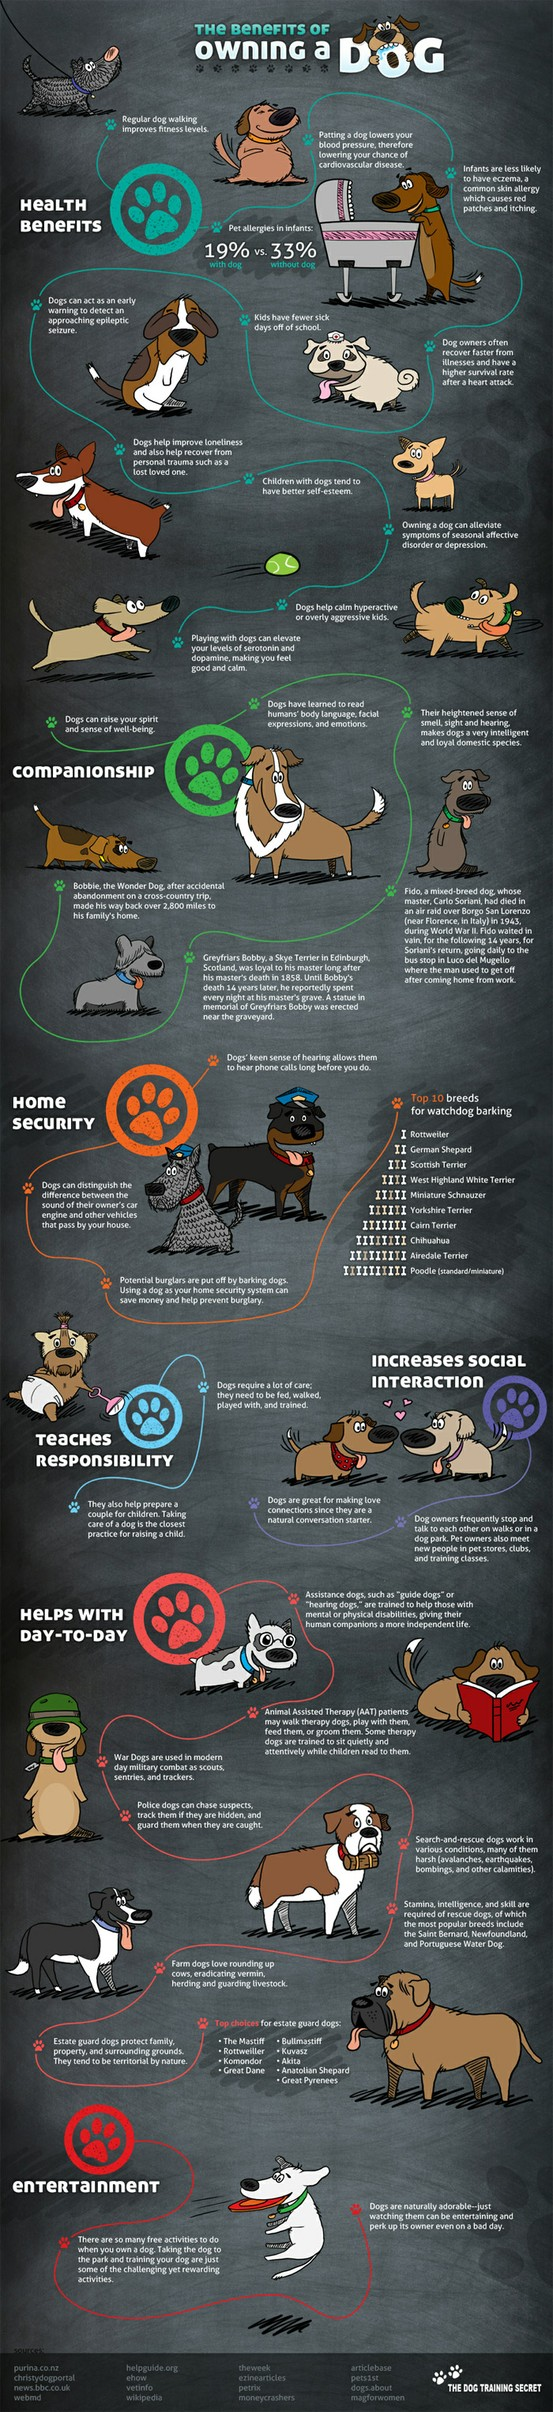 The Benefits Of Owning A Dog [Infographic]